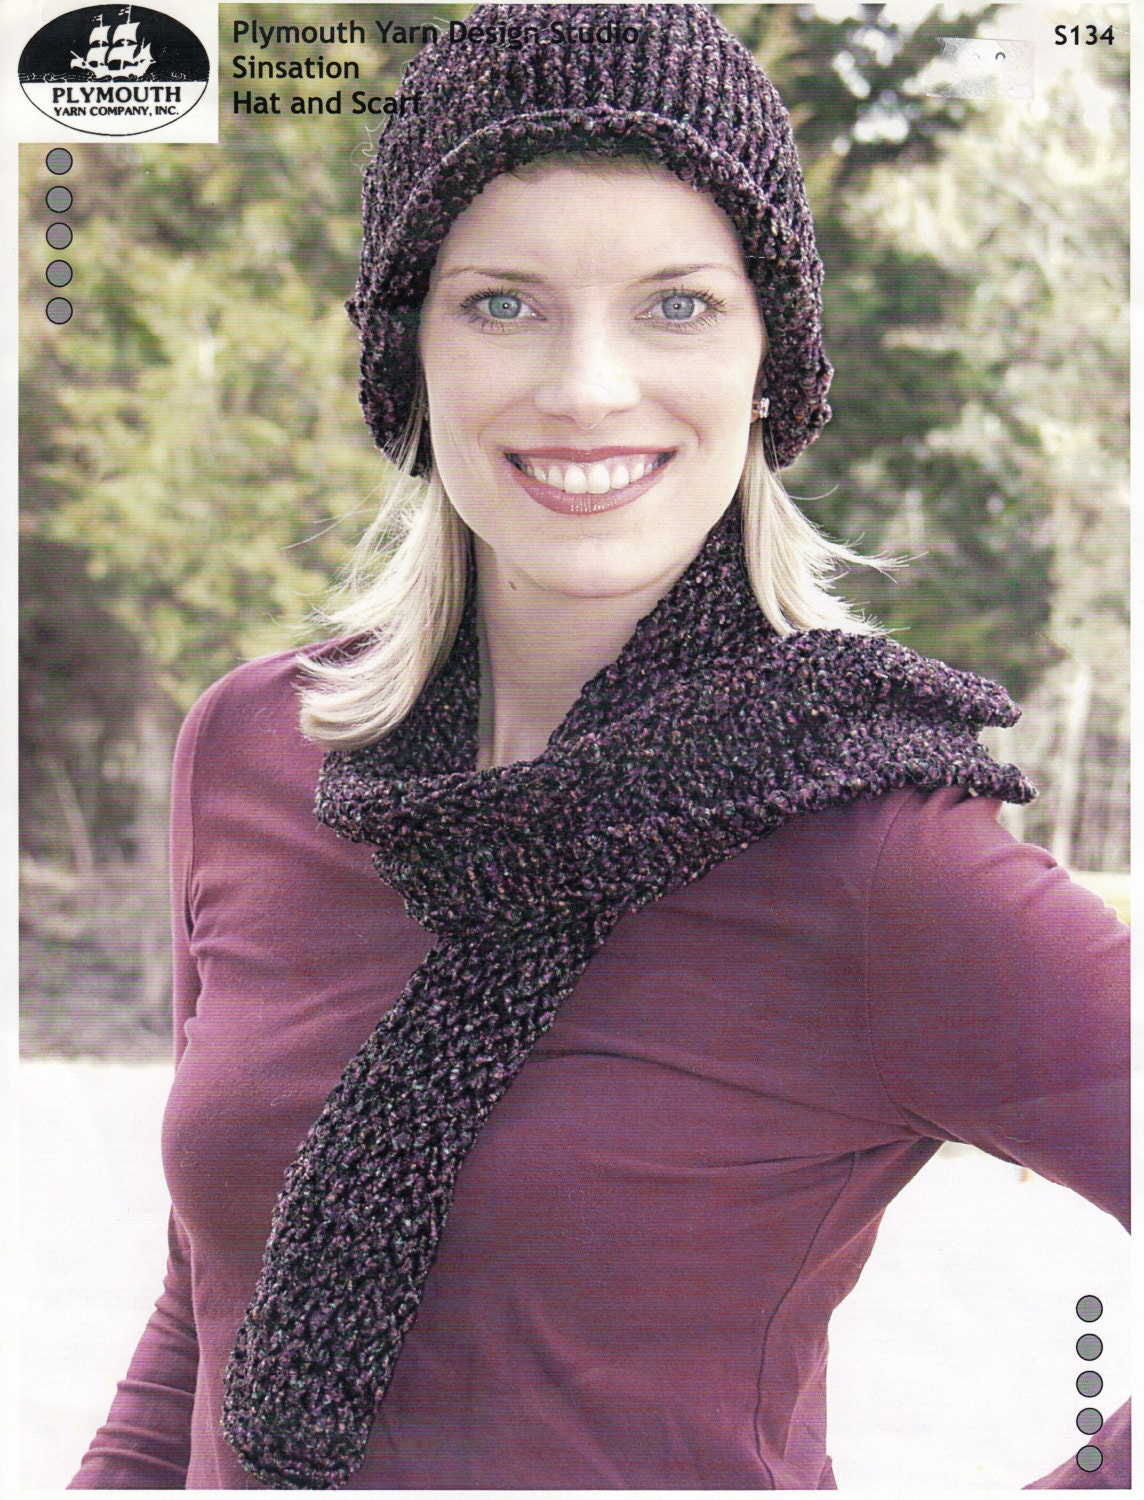 Rolled Brim Hat and Scarf Knitting Pattern - Knitted Hat and Scarf ...